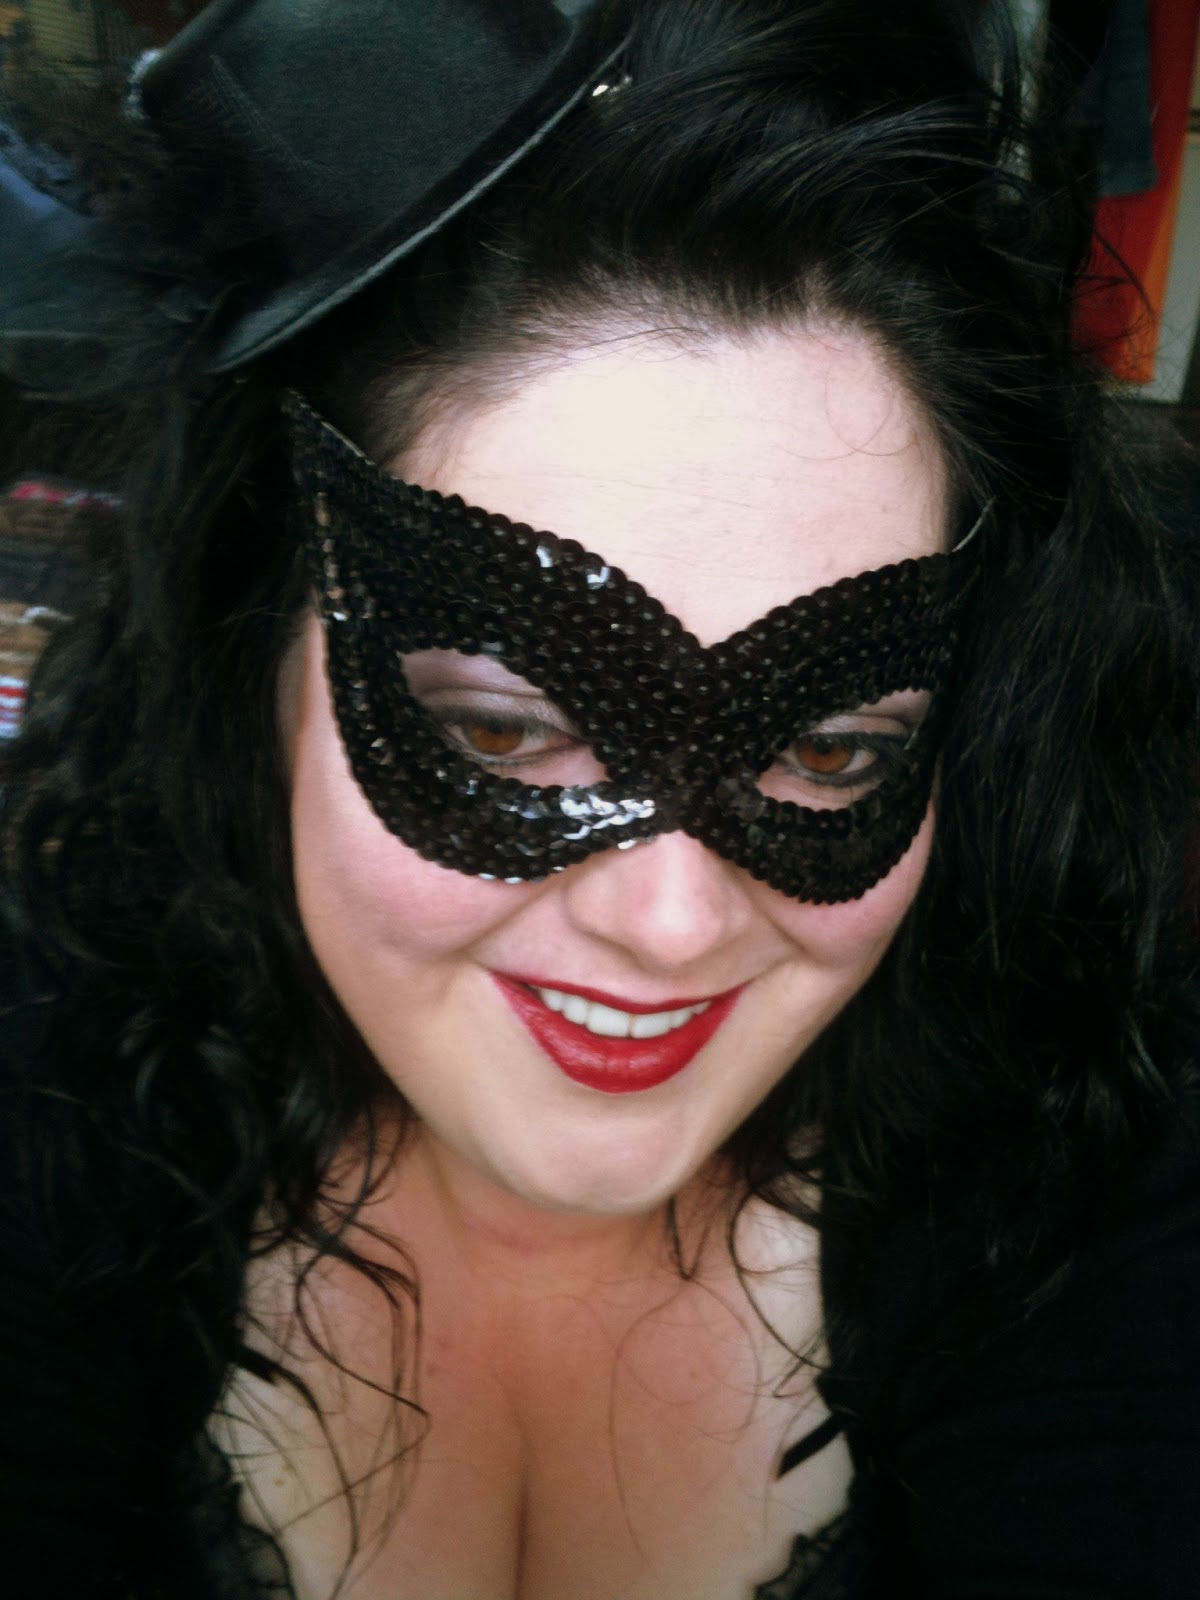 Aphrosie: Face of the day - Masquerade Ball Make Up